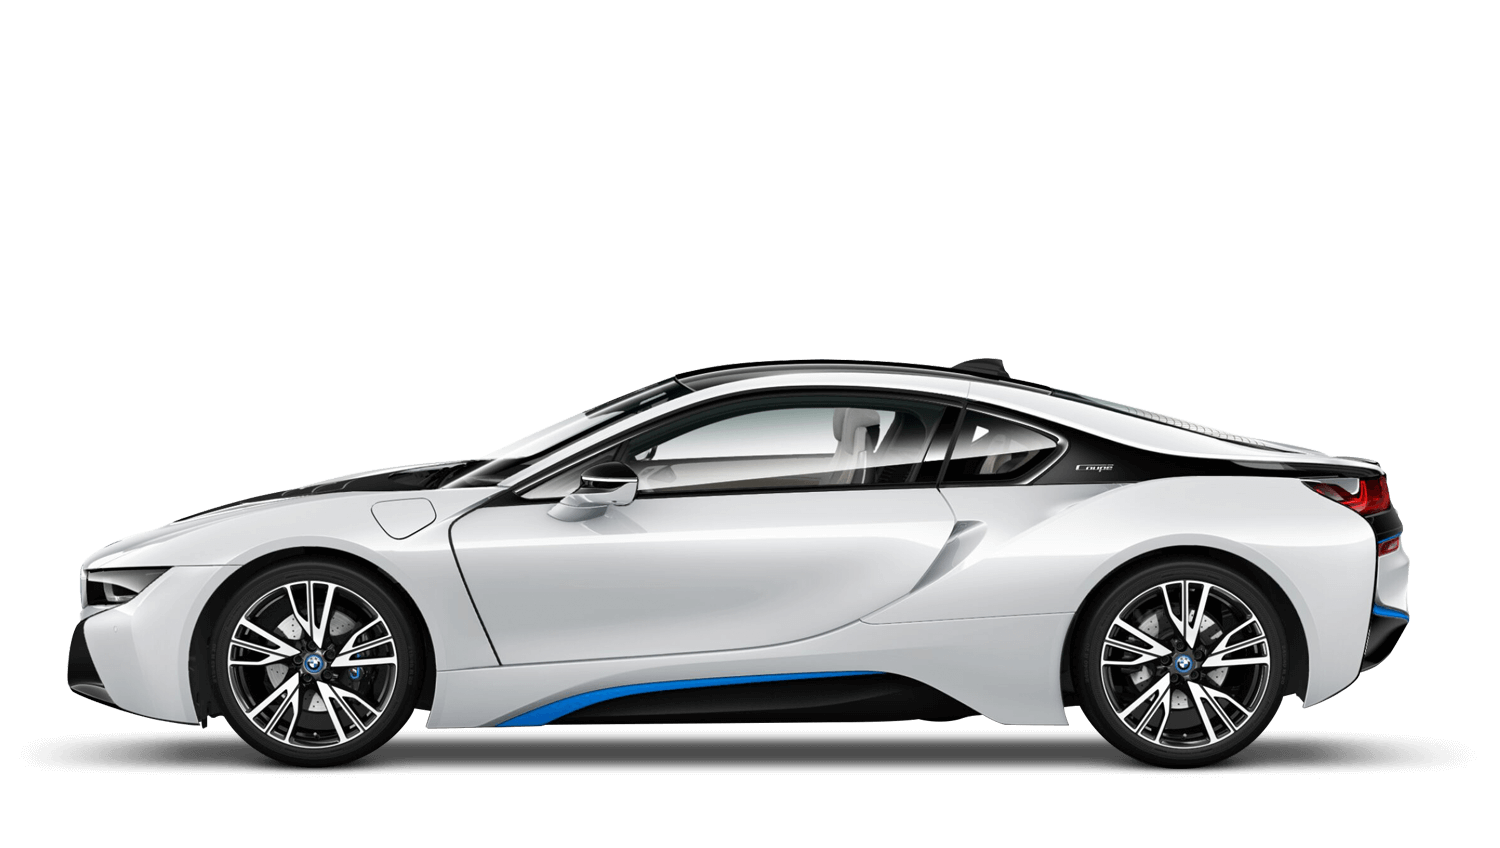 New Bmw I8 For Sale Barons Chandlers Bmw